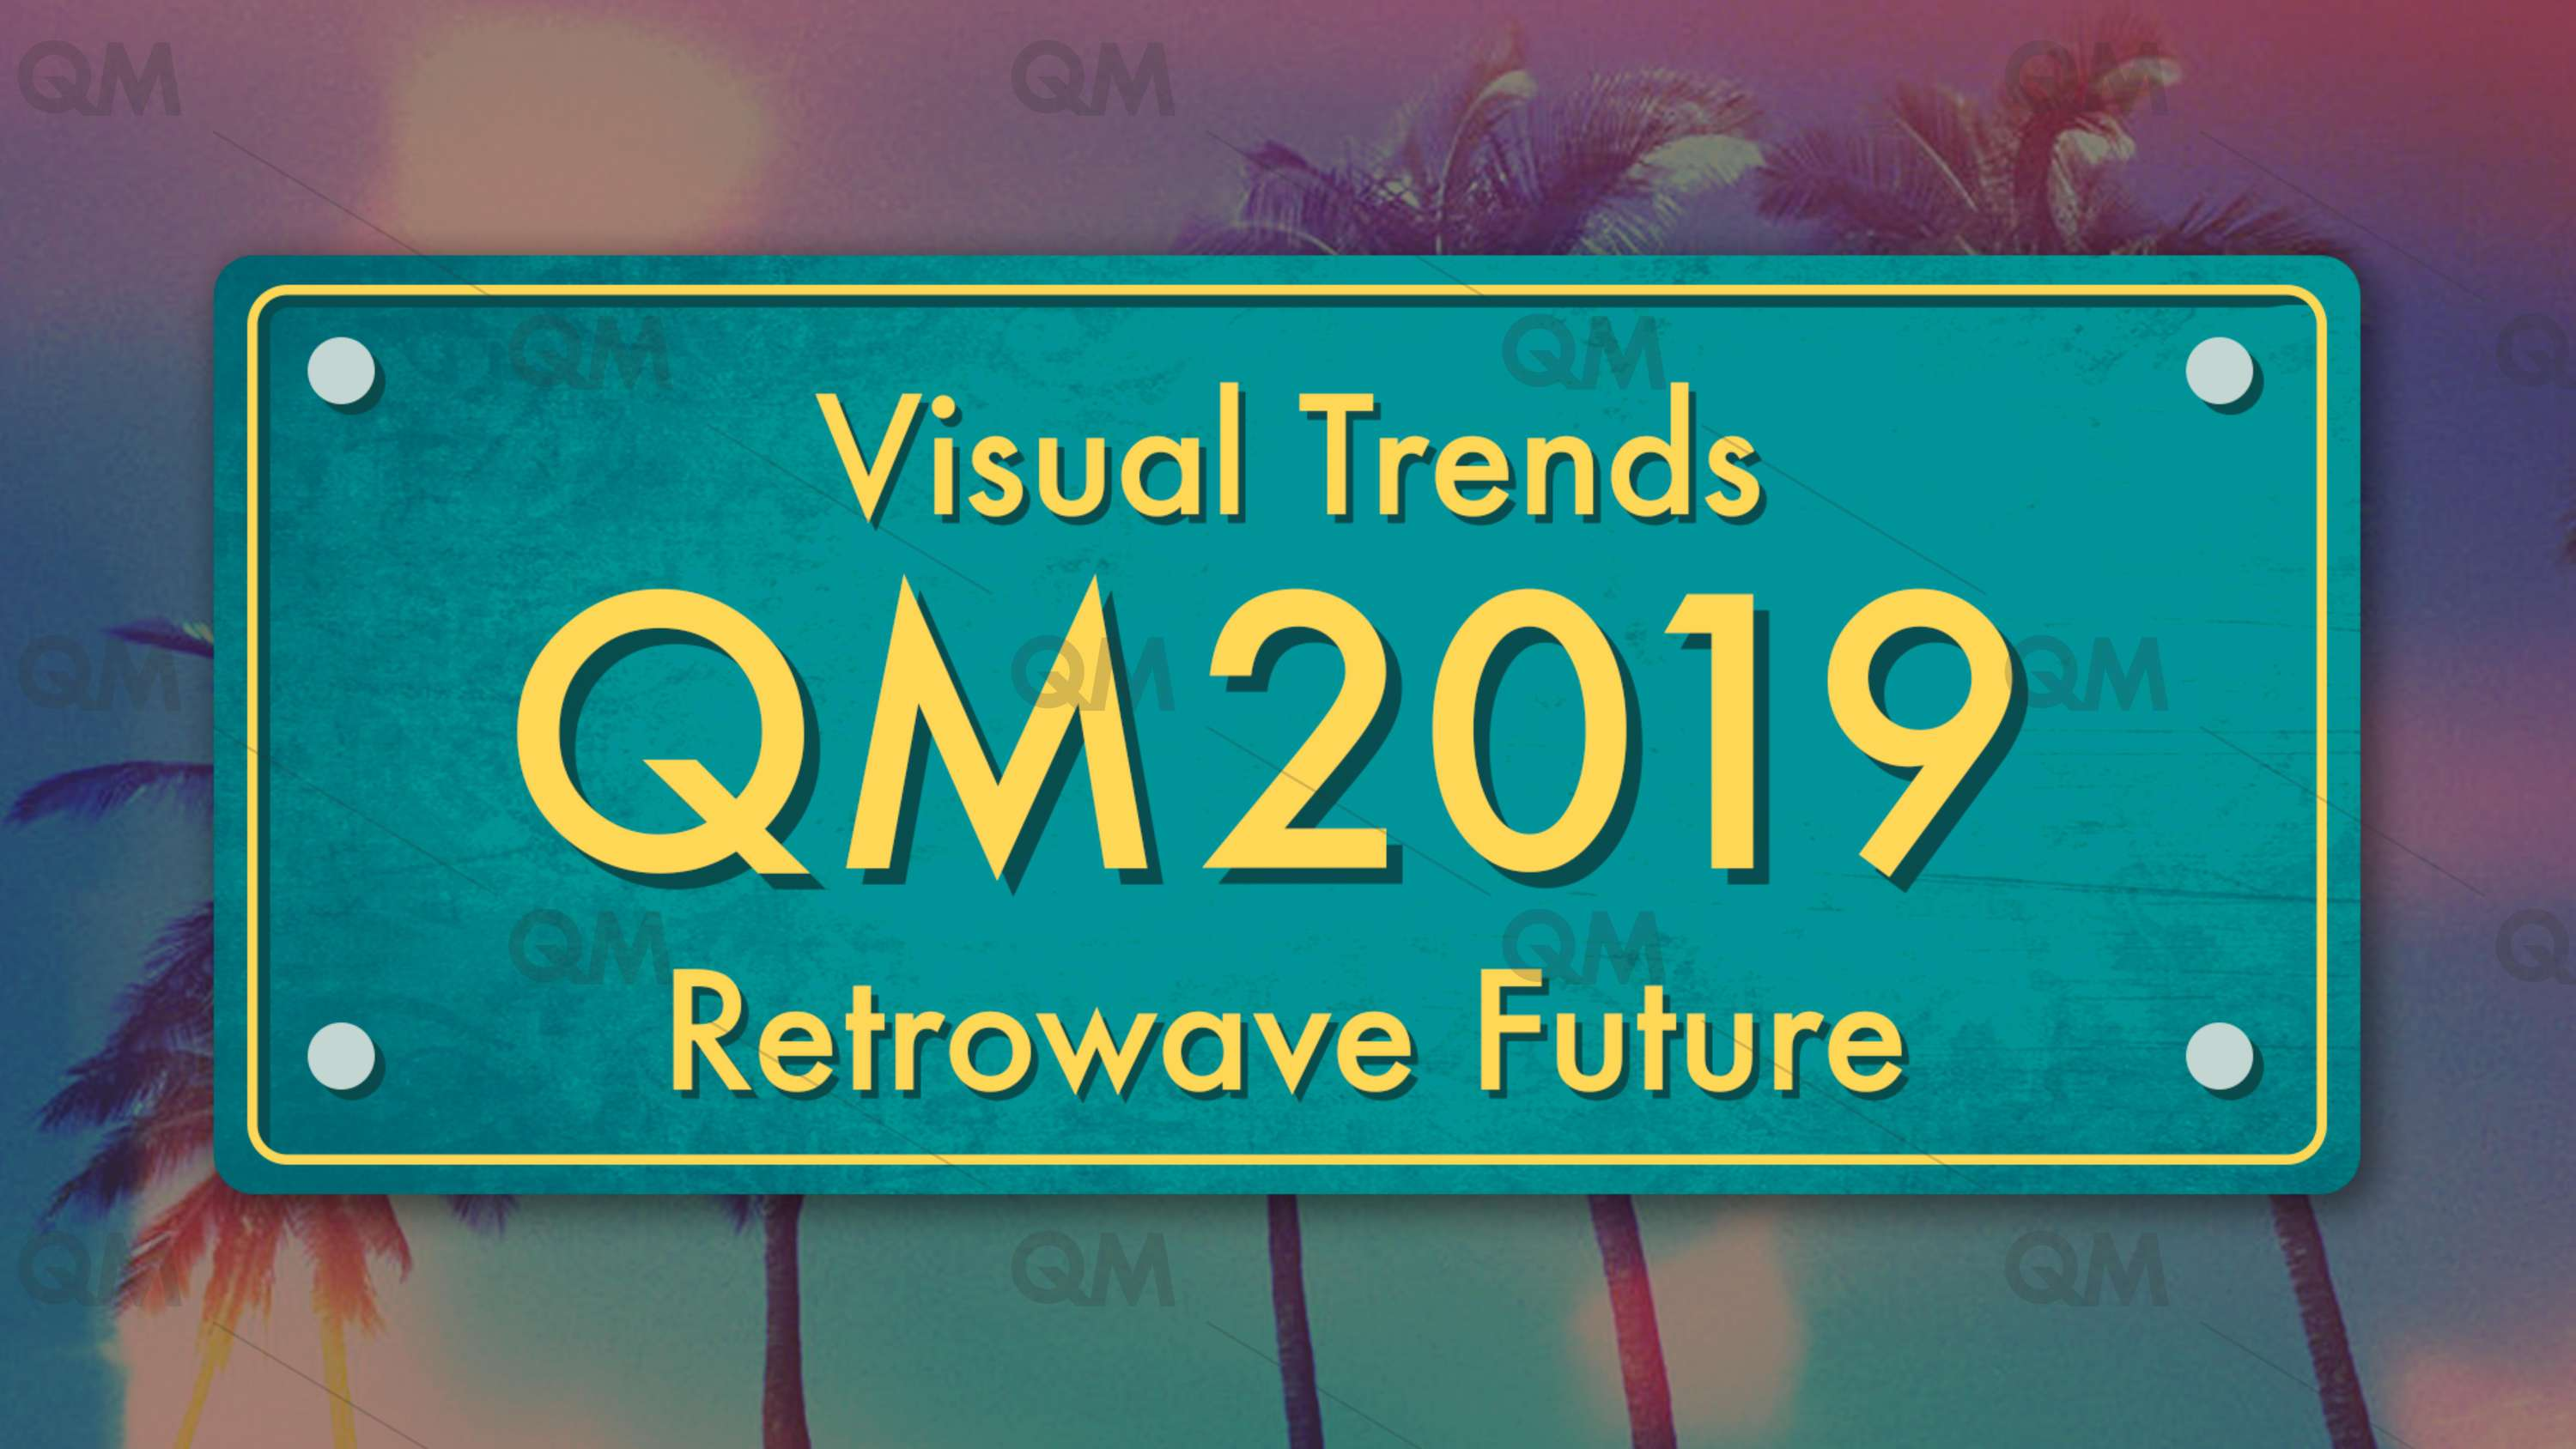 2019 Visual Trends | Retrowave Future | The Dots